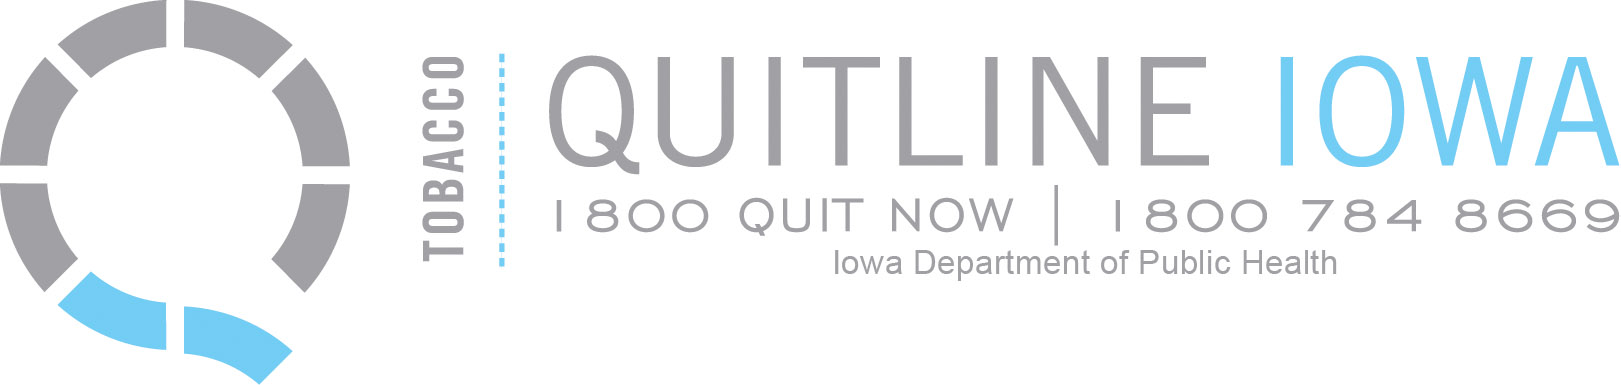 Quitline Iowa